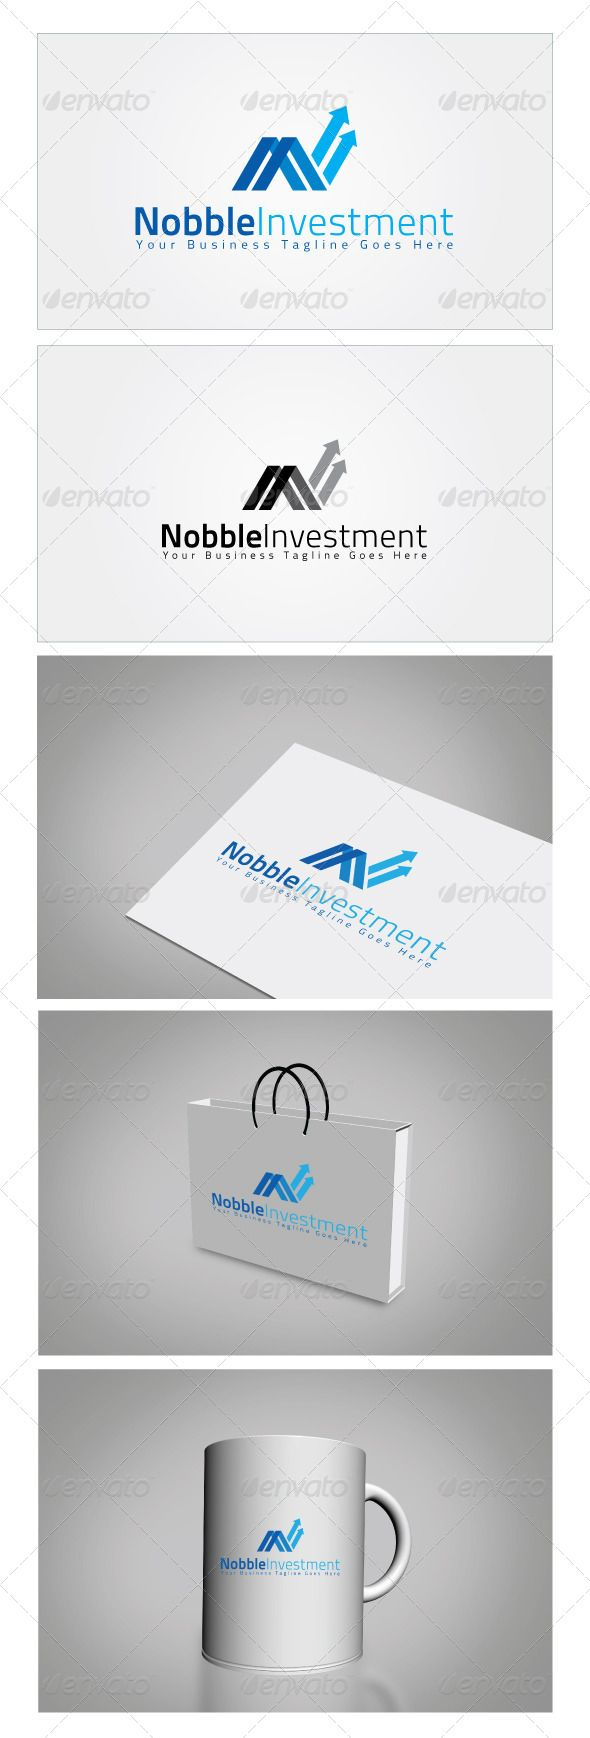 Nobble Investment Logo Template — Photoshop PSD #creative studio #industrial • Available here → https://graphicriver.net/item/nobble-investment-logo-template/6045357?ref=pxcr